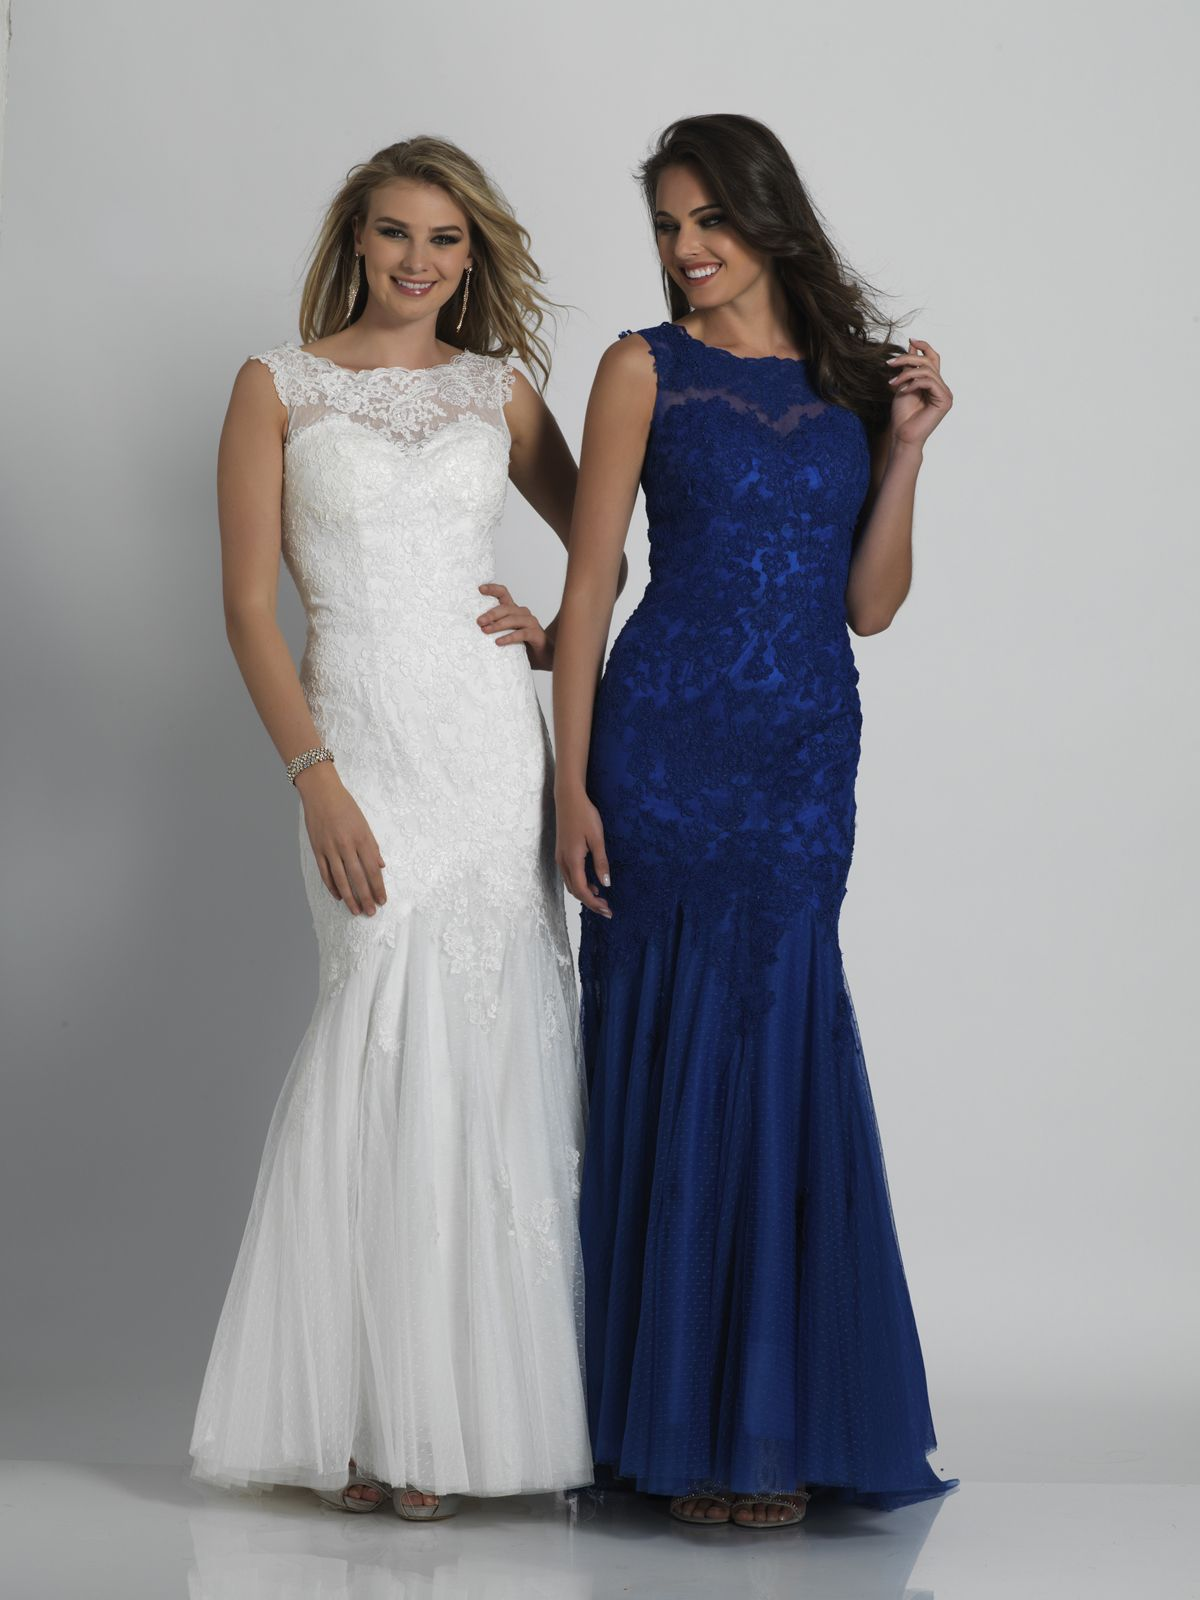 Long sleeve dresses to wear to a wedding  Pin by Bridal Superstore Indy on Prom Dresses  Pinterest  Elegant